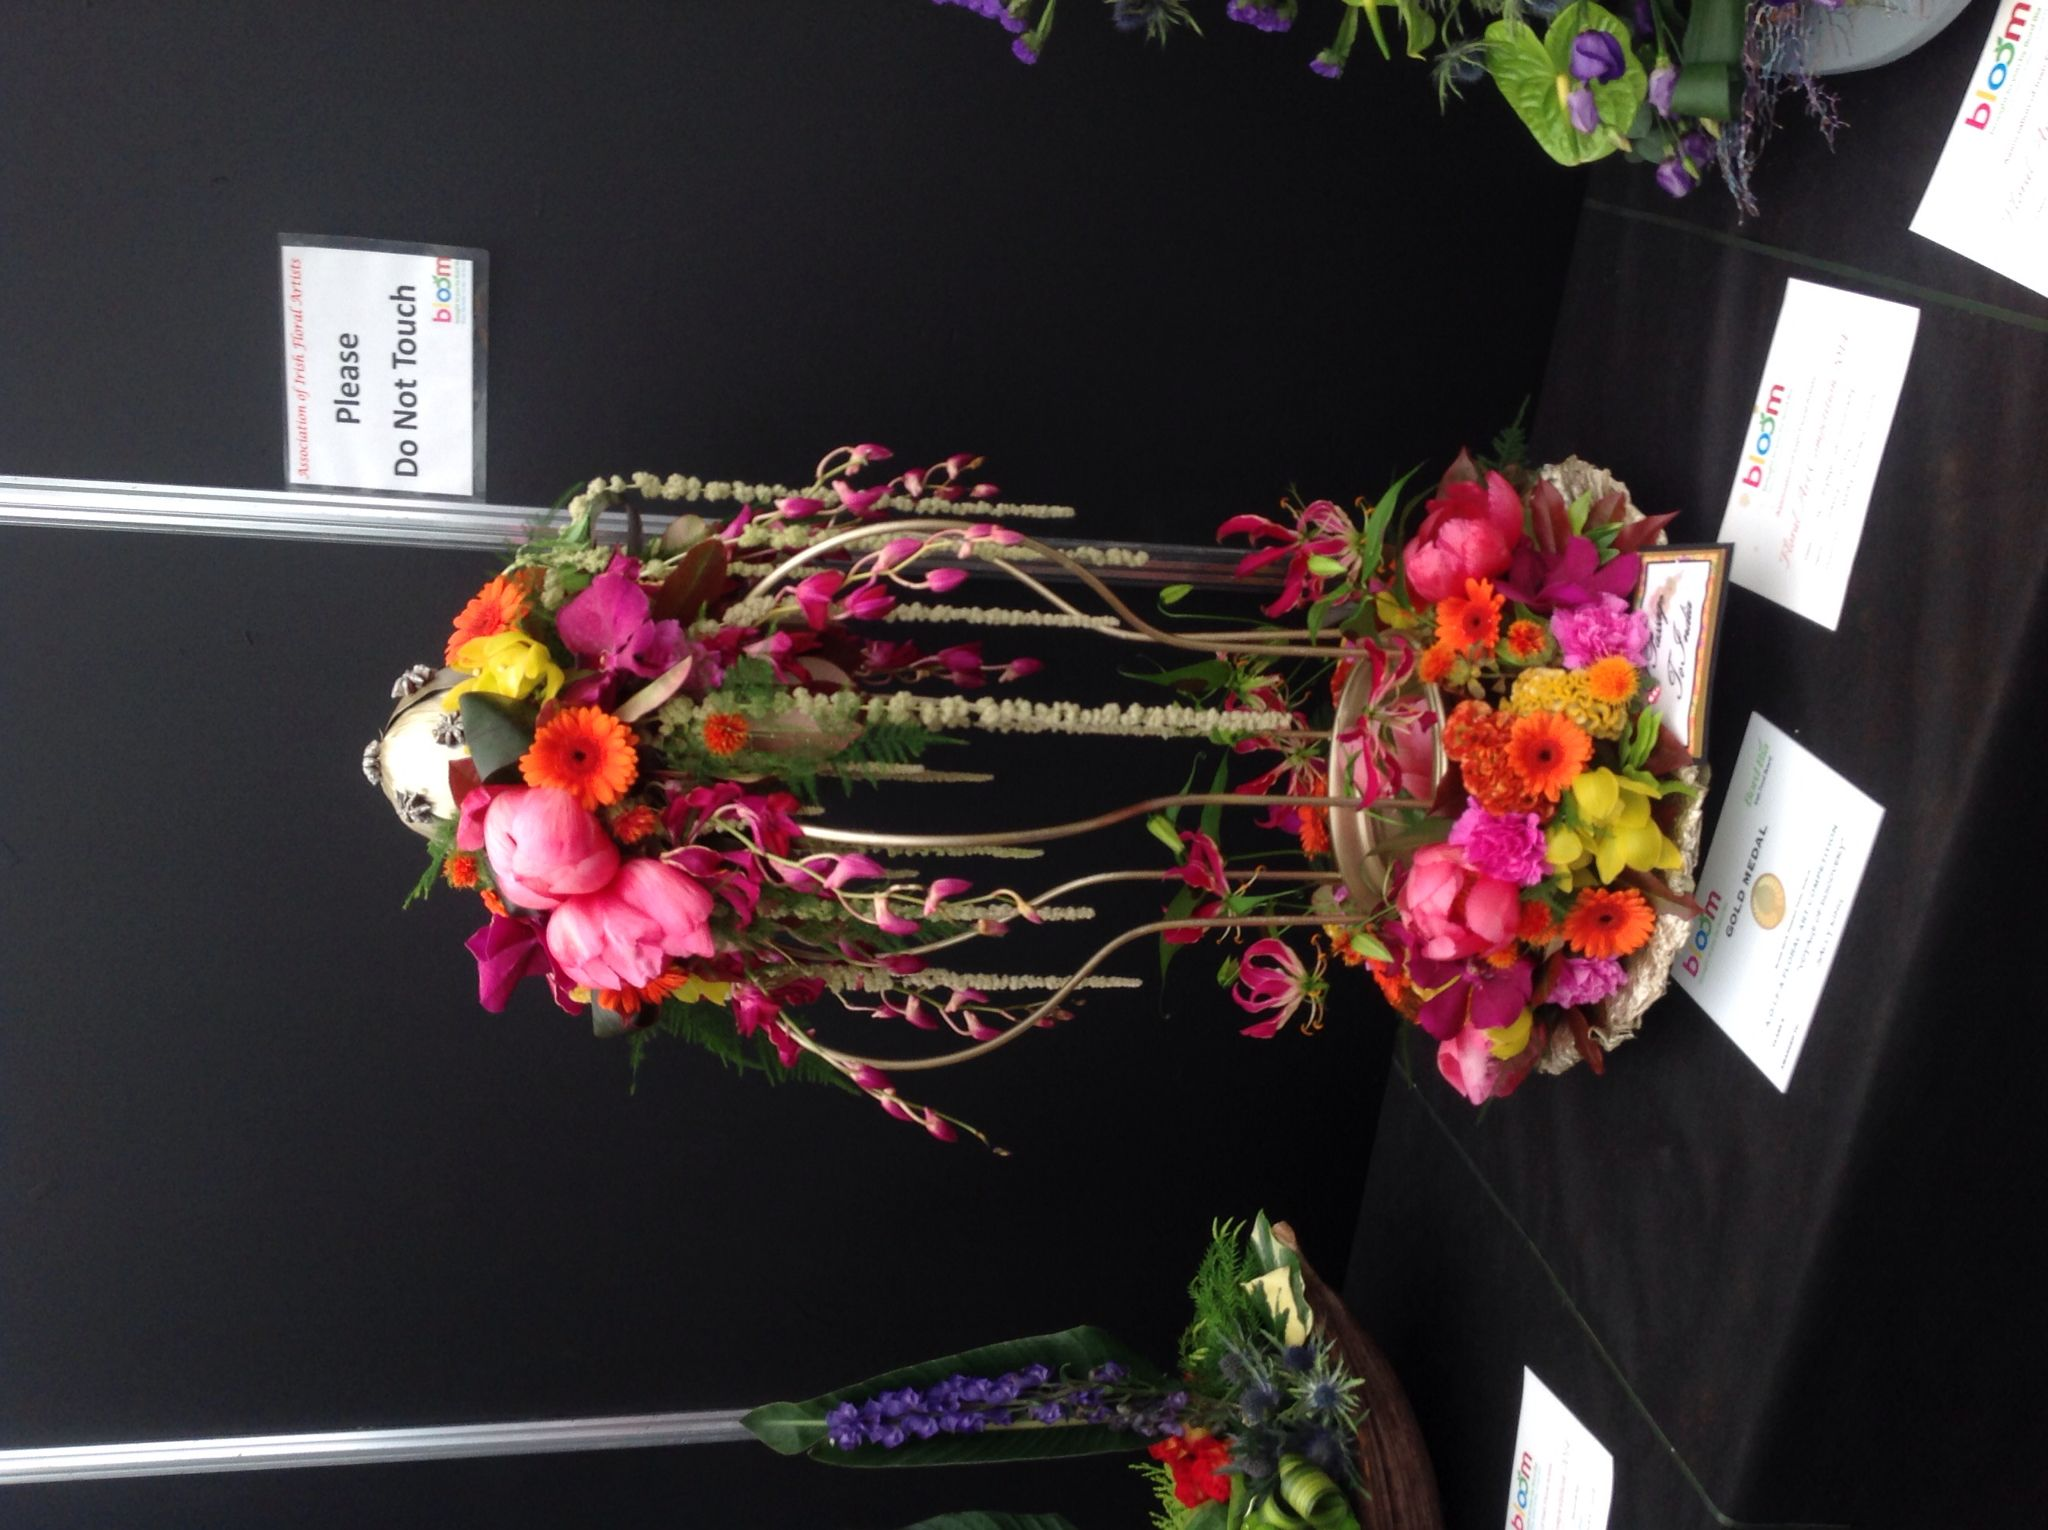 Another winner at Bloom Dublin 2014